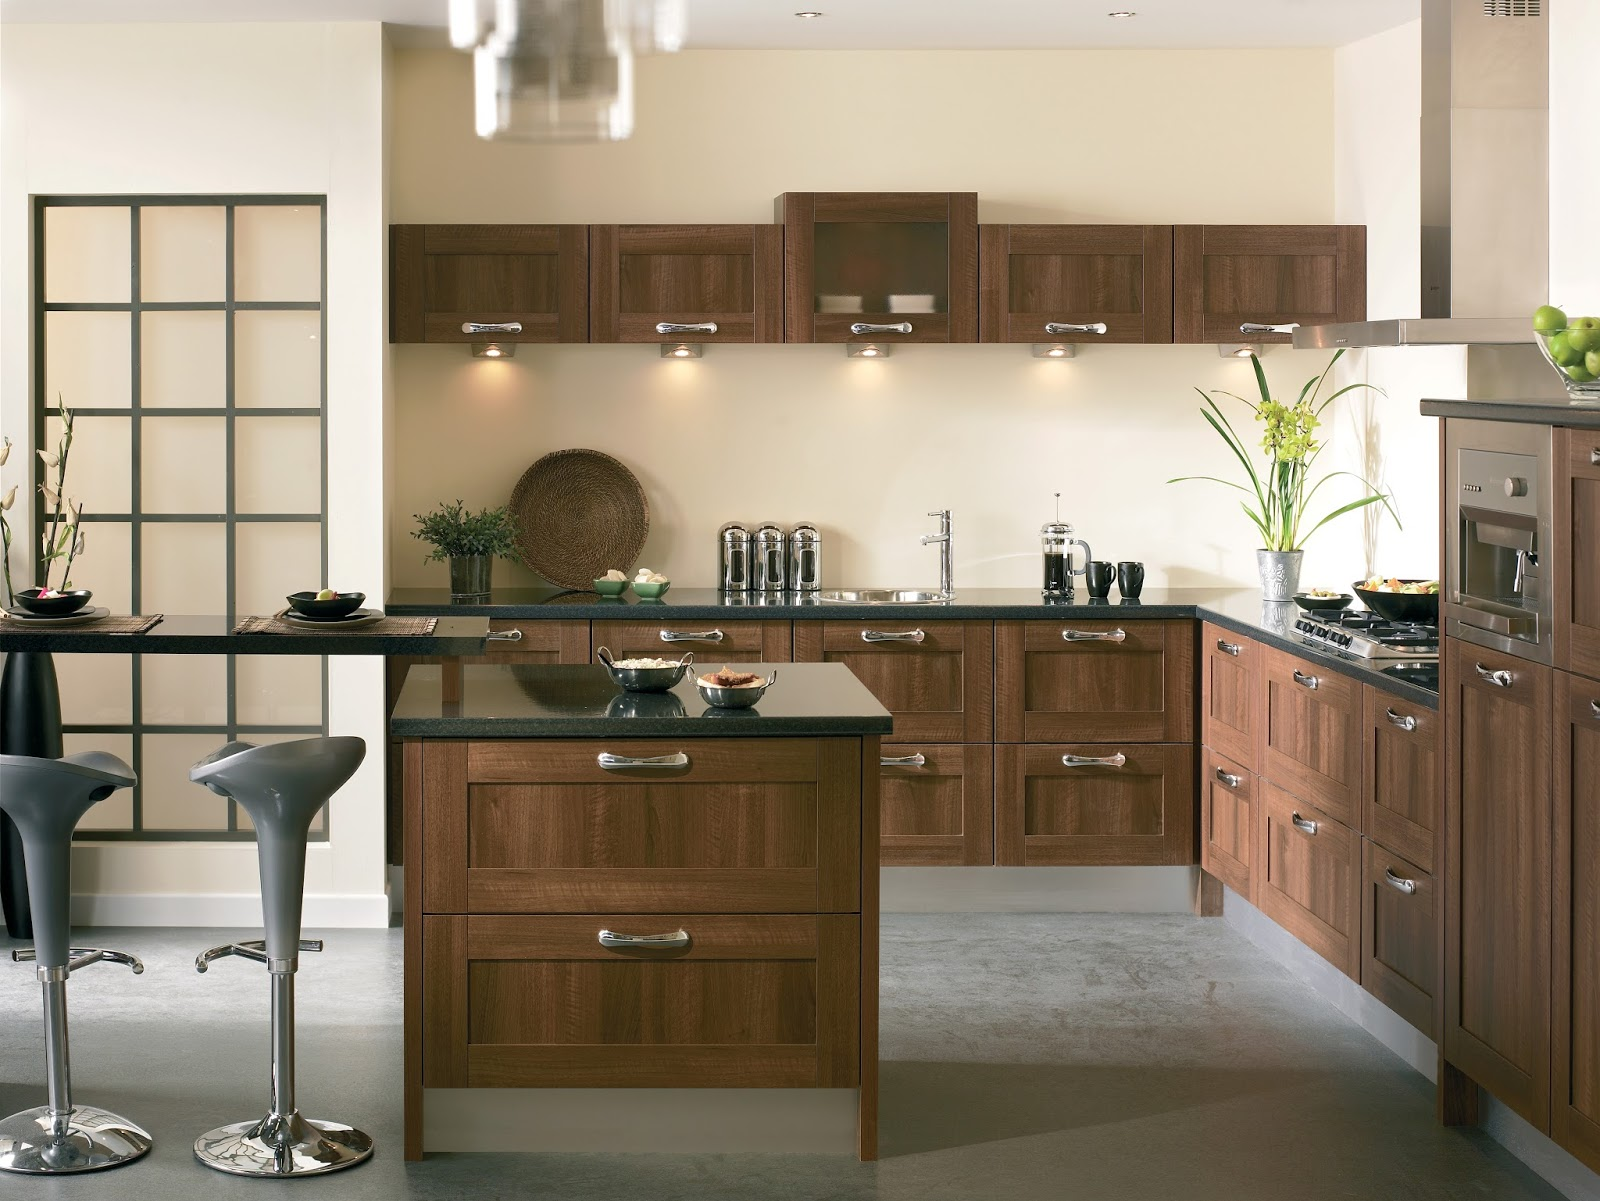 How Can I Change The Colour Of My Kitchen Worktops